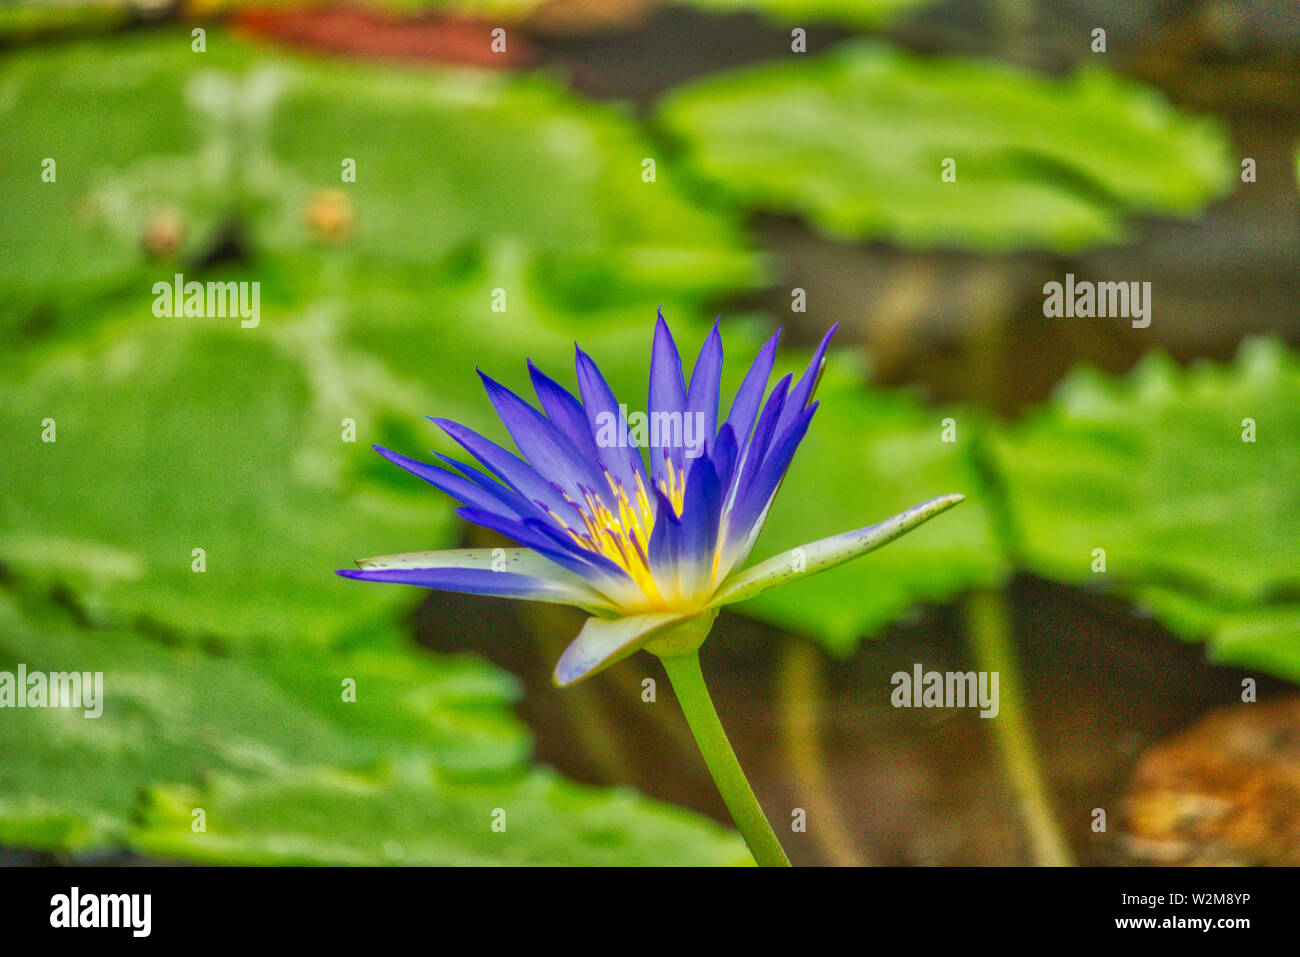 This unique picture shows a large purple flowering water lily. This award-winning picture was taken in the Maldives Stock Photo